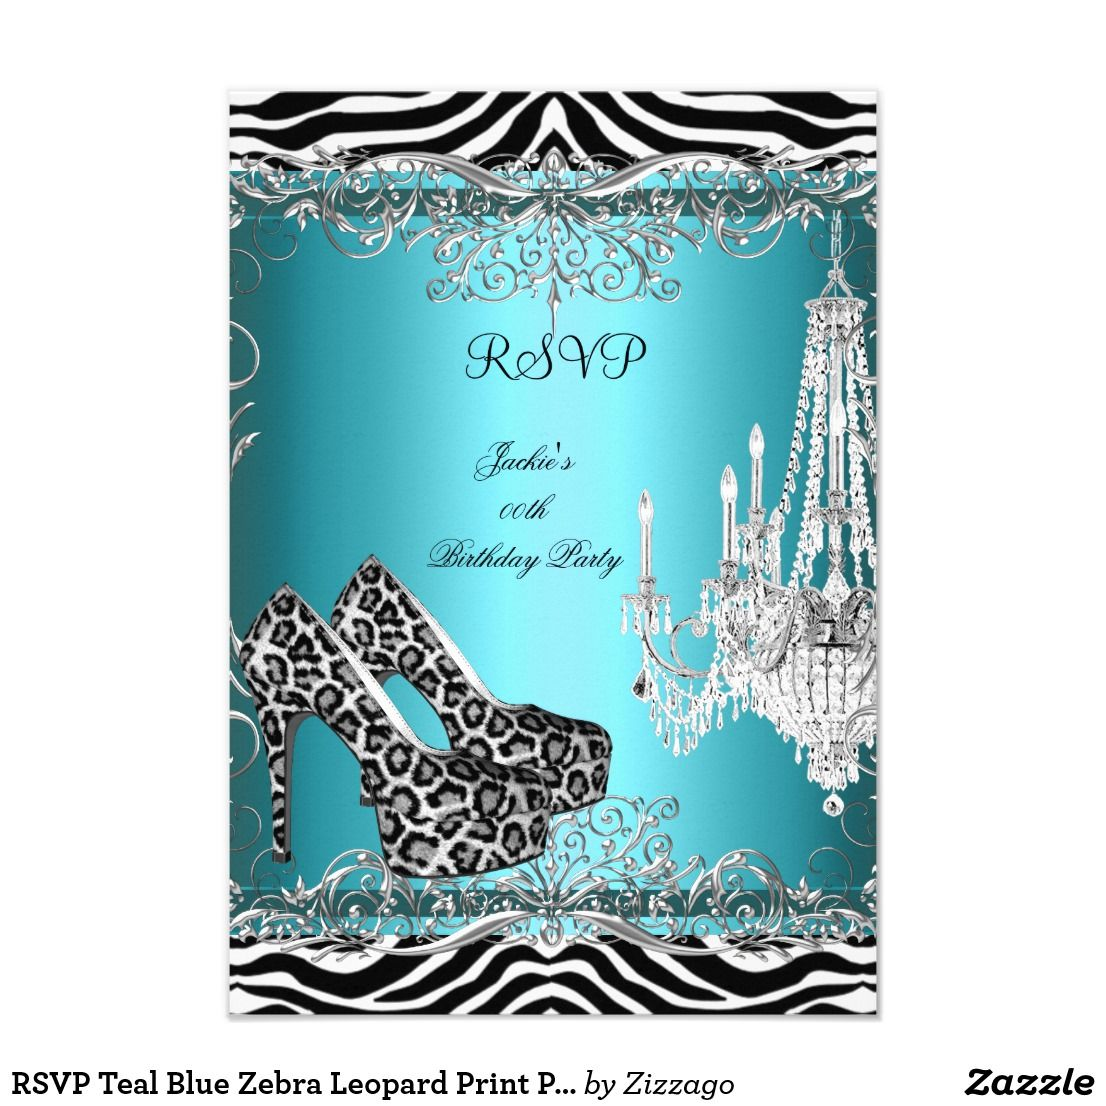 RSVP Teal Blue Zebra Leopard Print Party Shoes Card Reply Response High Heel Any Event Invitation